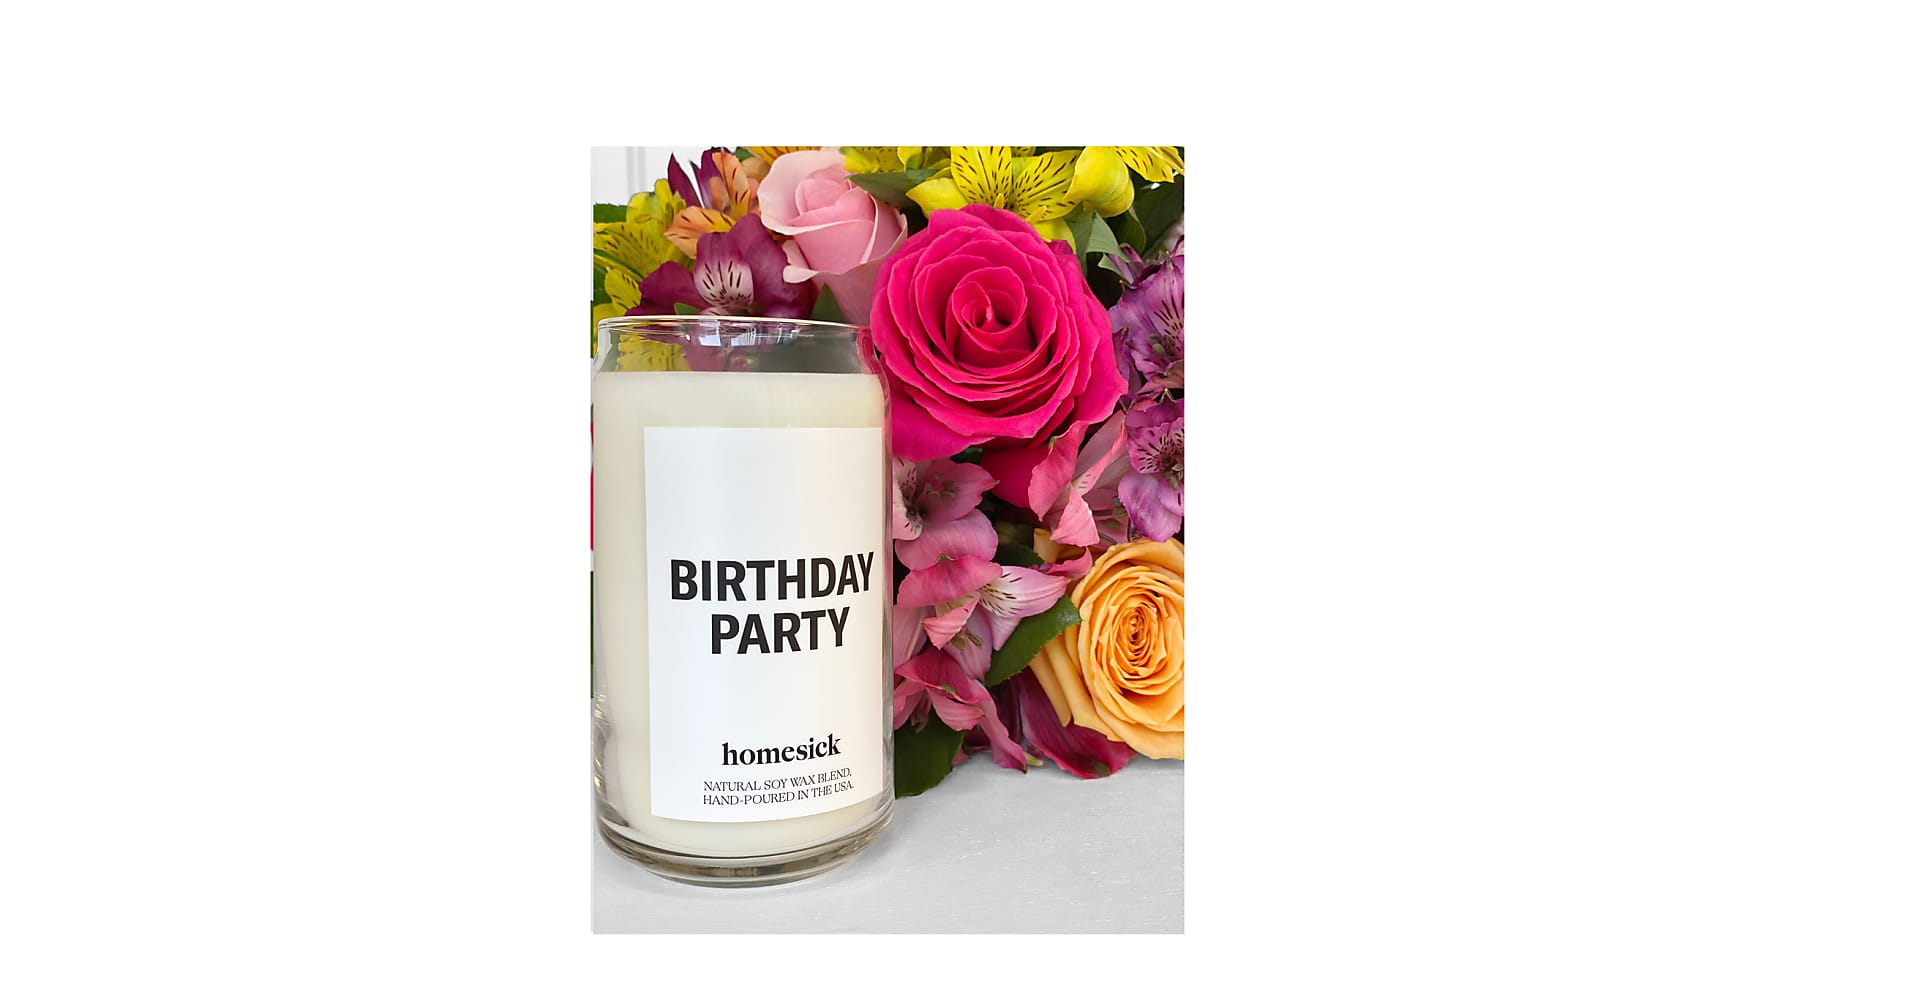 Sunshine Bouquet & Birthday Party Homesick® Candle - Image 2 Of 2